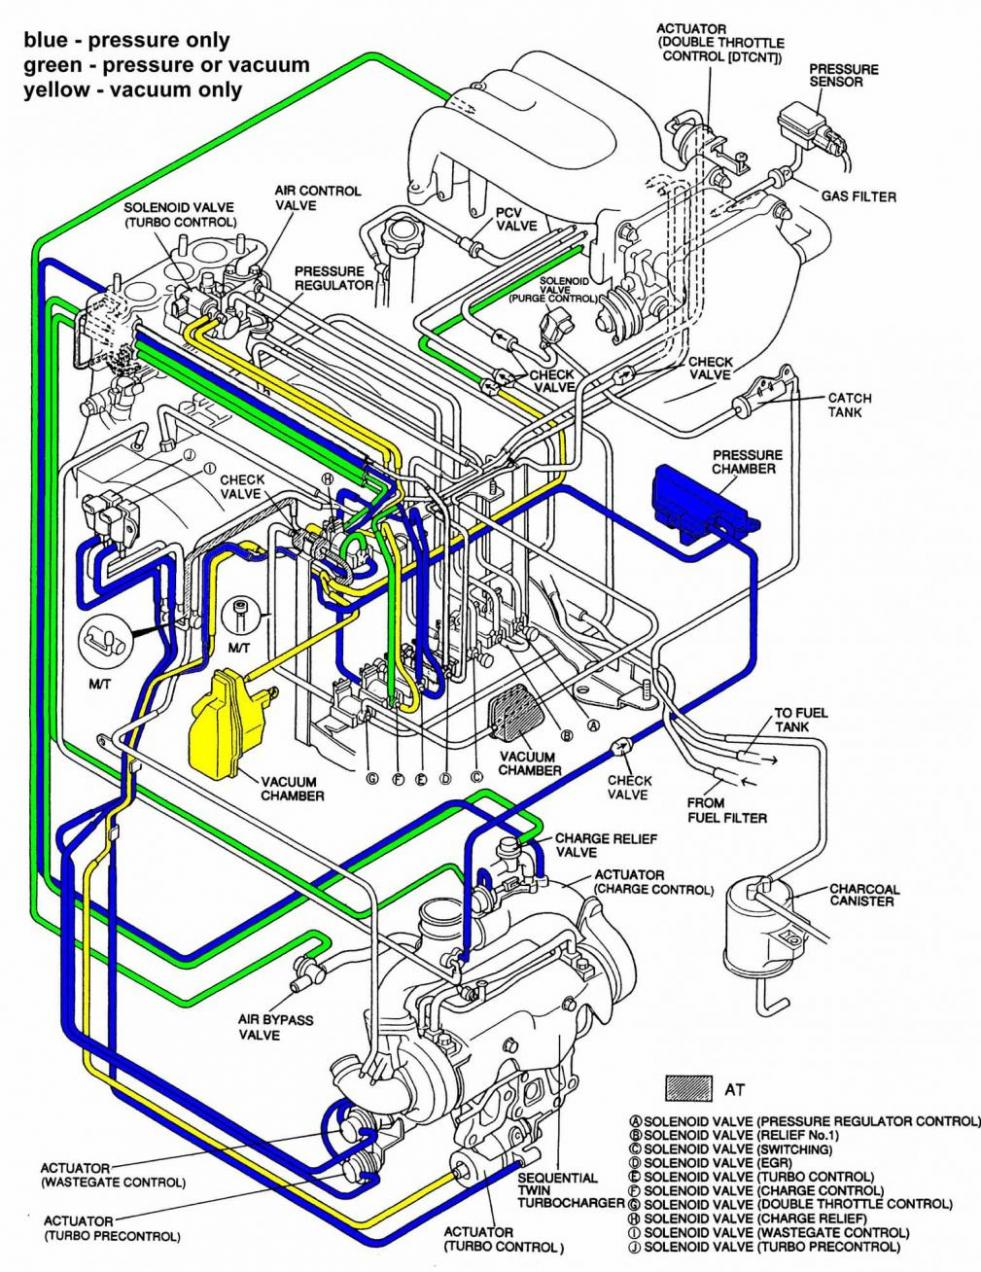 medium resolution of 1993 mercedes 300e wiring diagram free picture images gallery